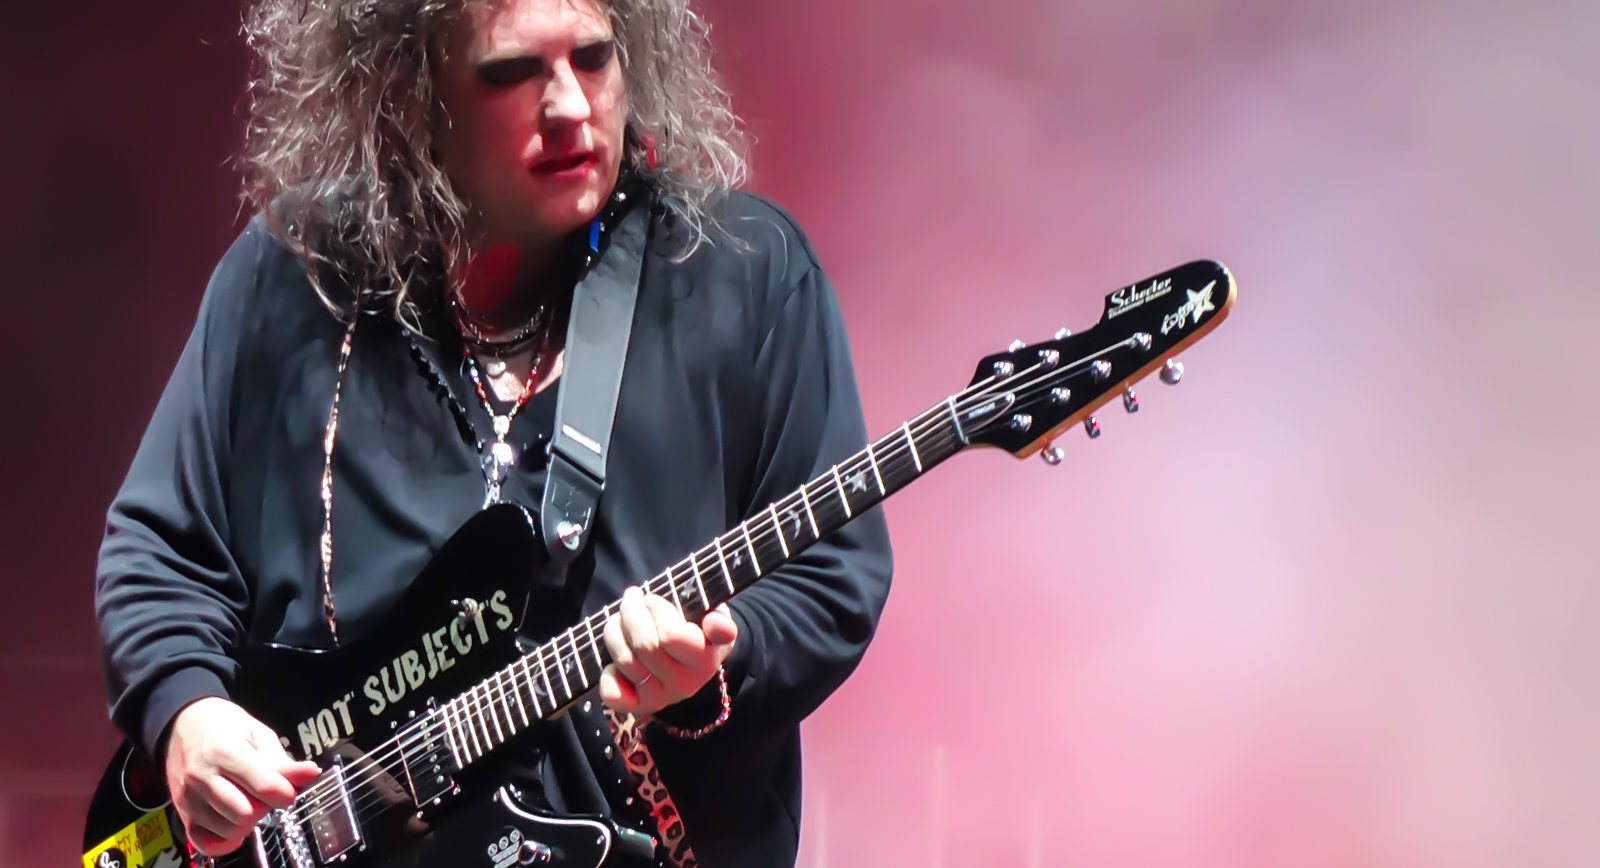 The-Cure-Tour-2016-Concert-Live-Cities-Dates-Tickets-FI